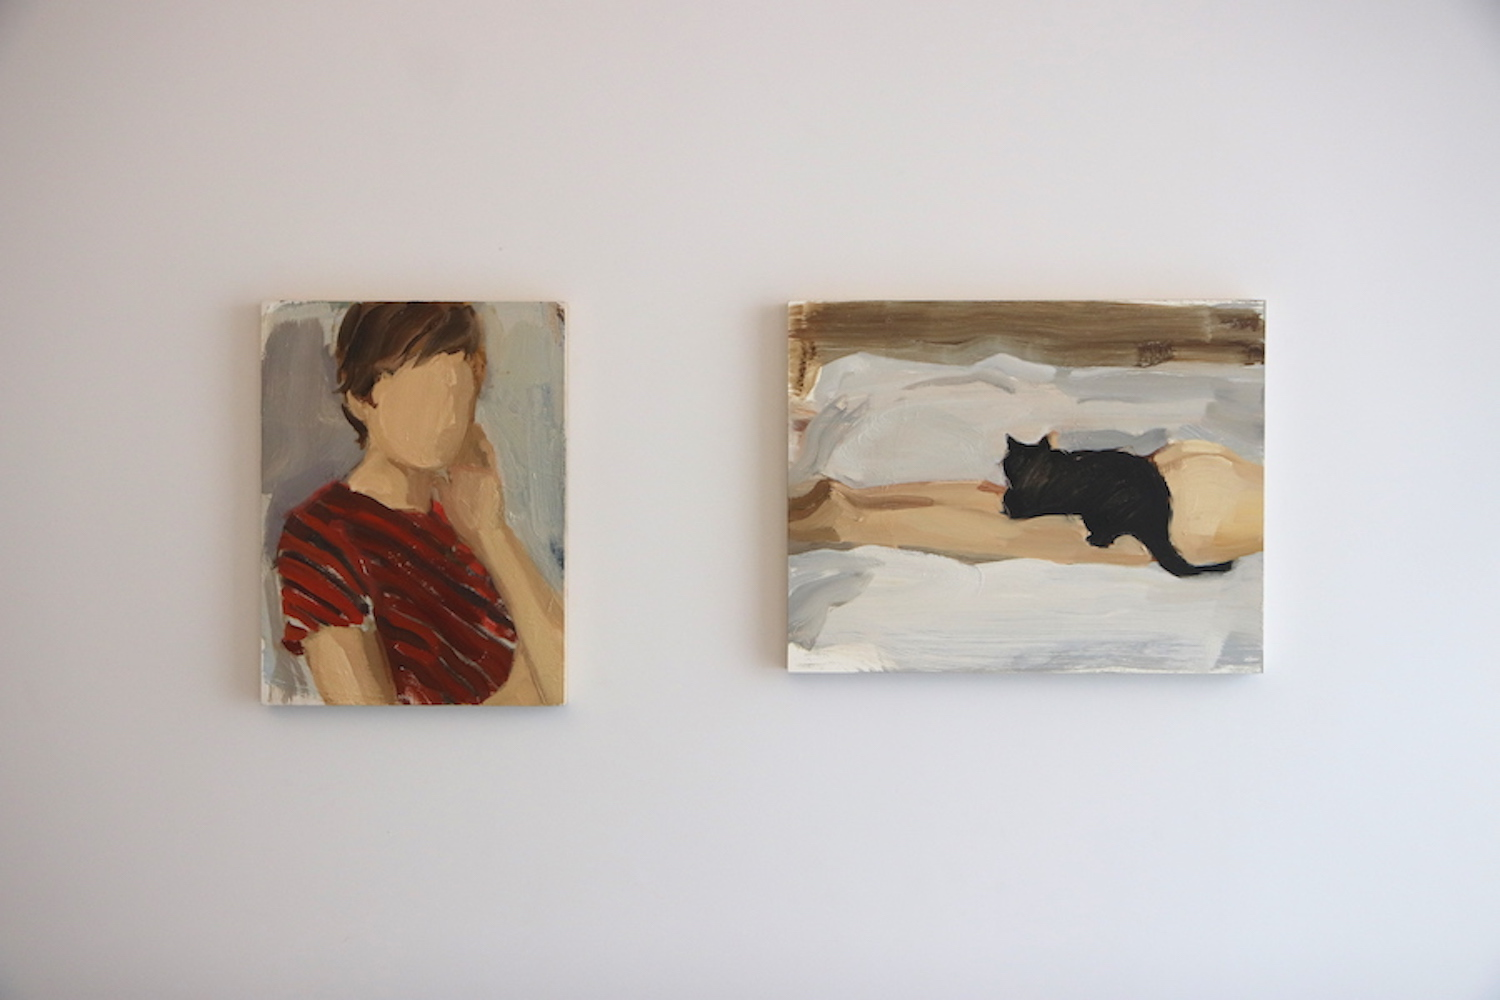 The two paintings by Gideo Rubin as Hee Jae's latest purchases. Courtesy of Hee Jae Kang.